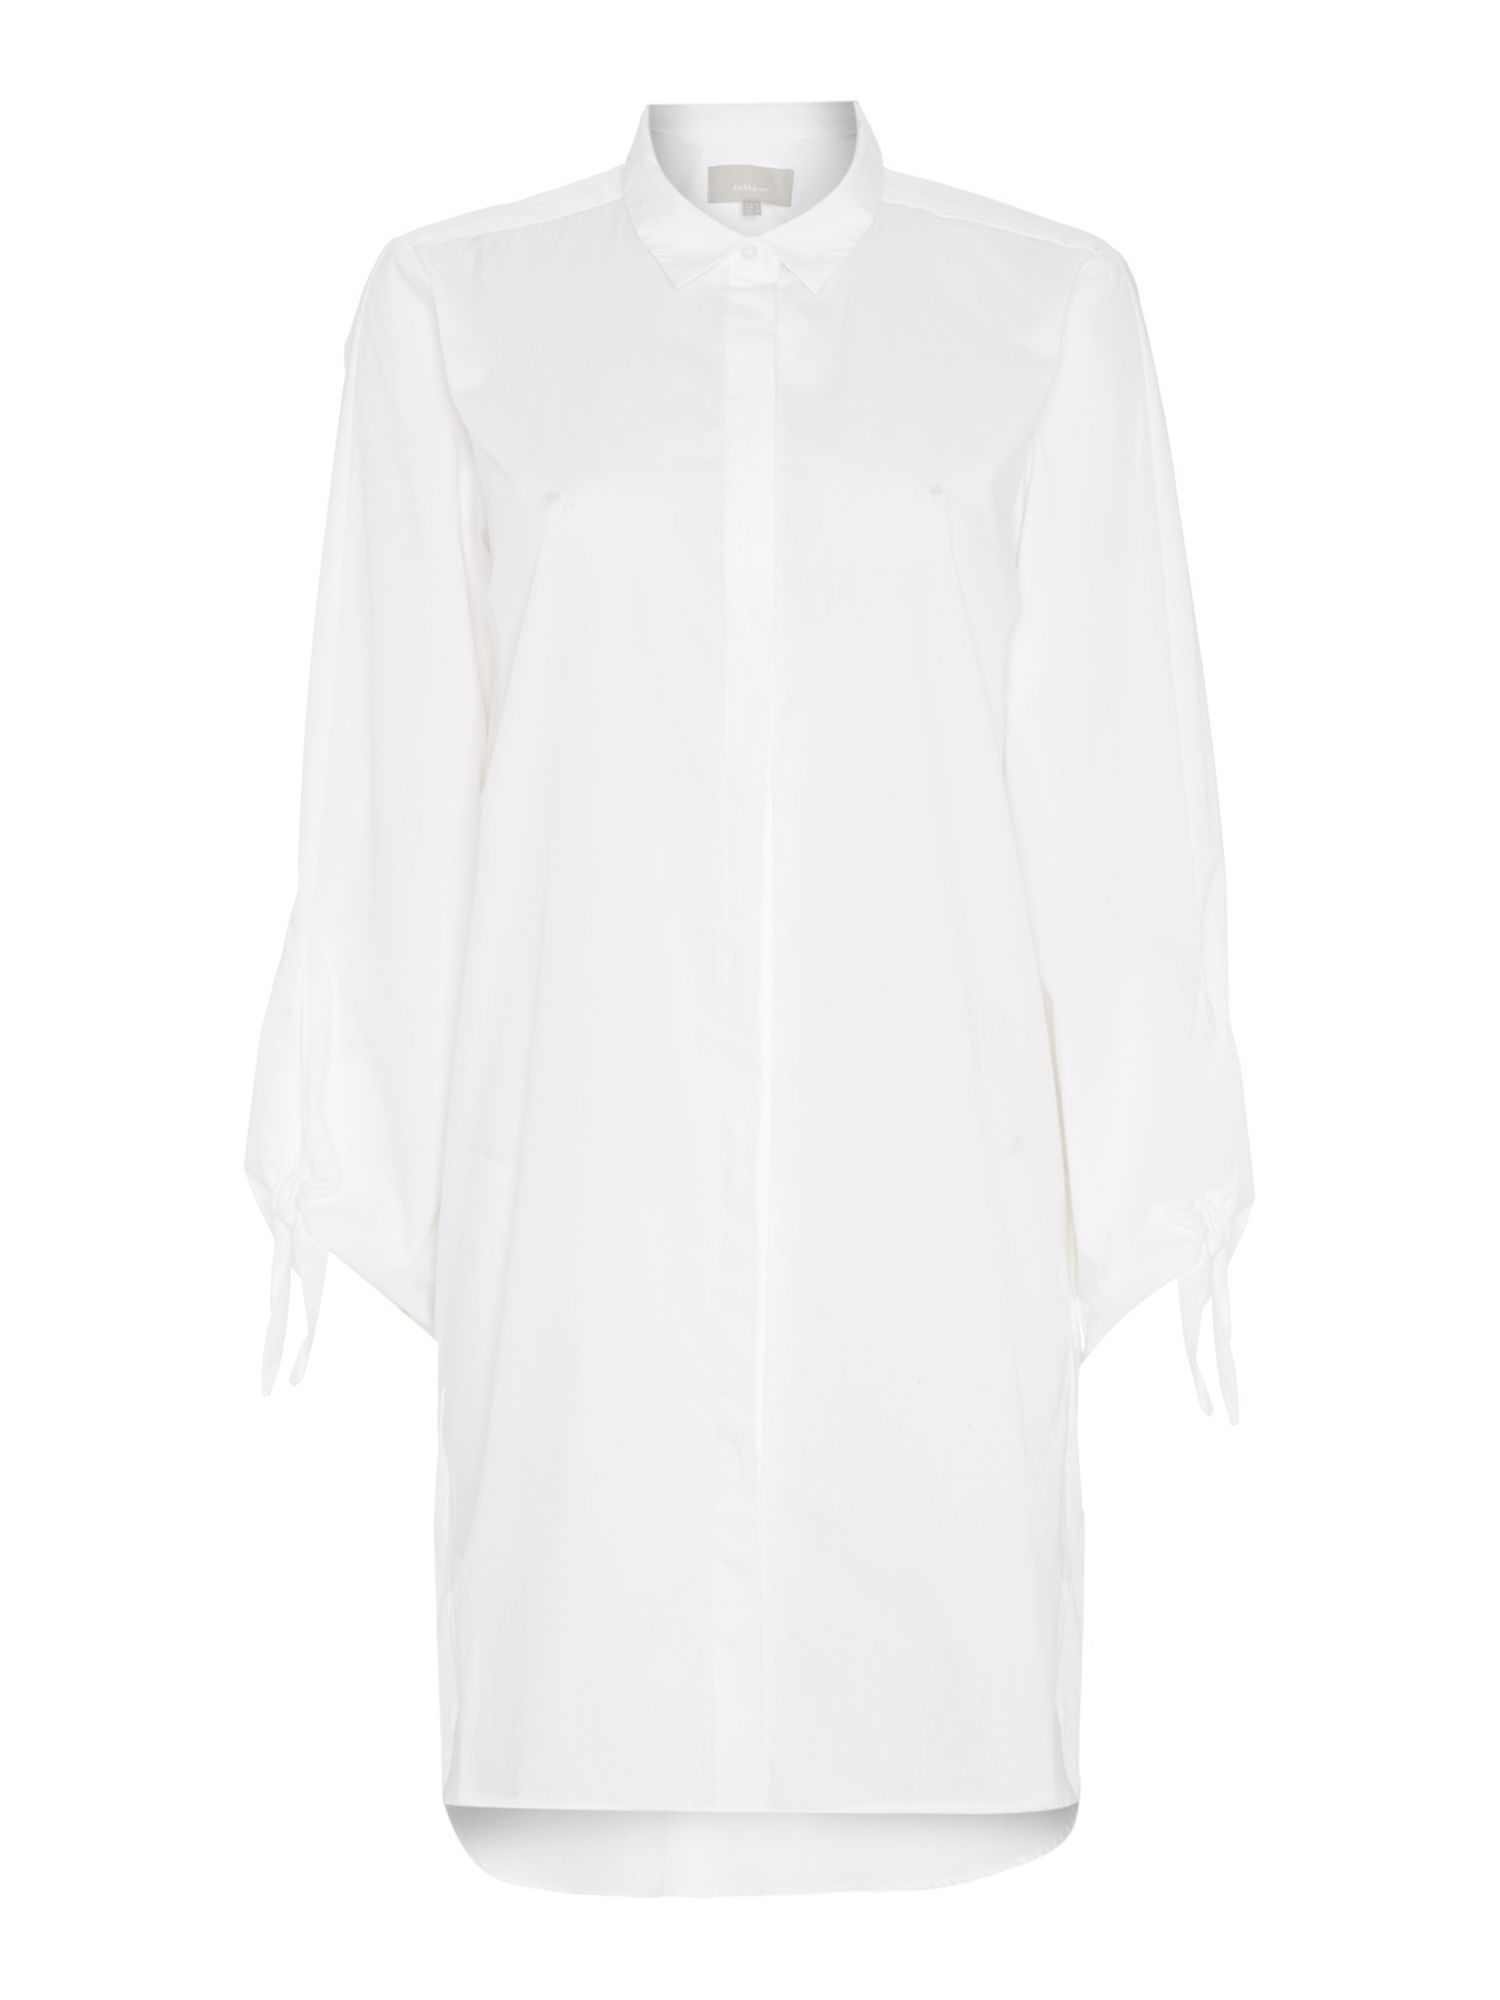 In Wear Long sleeve shirt with tie detail sleeve, White